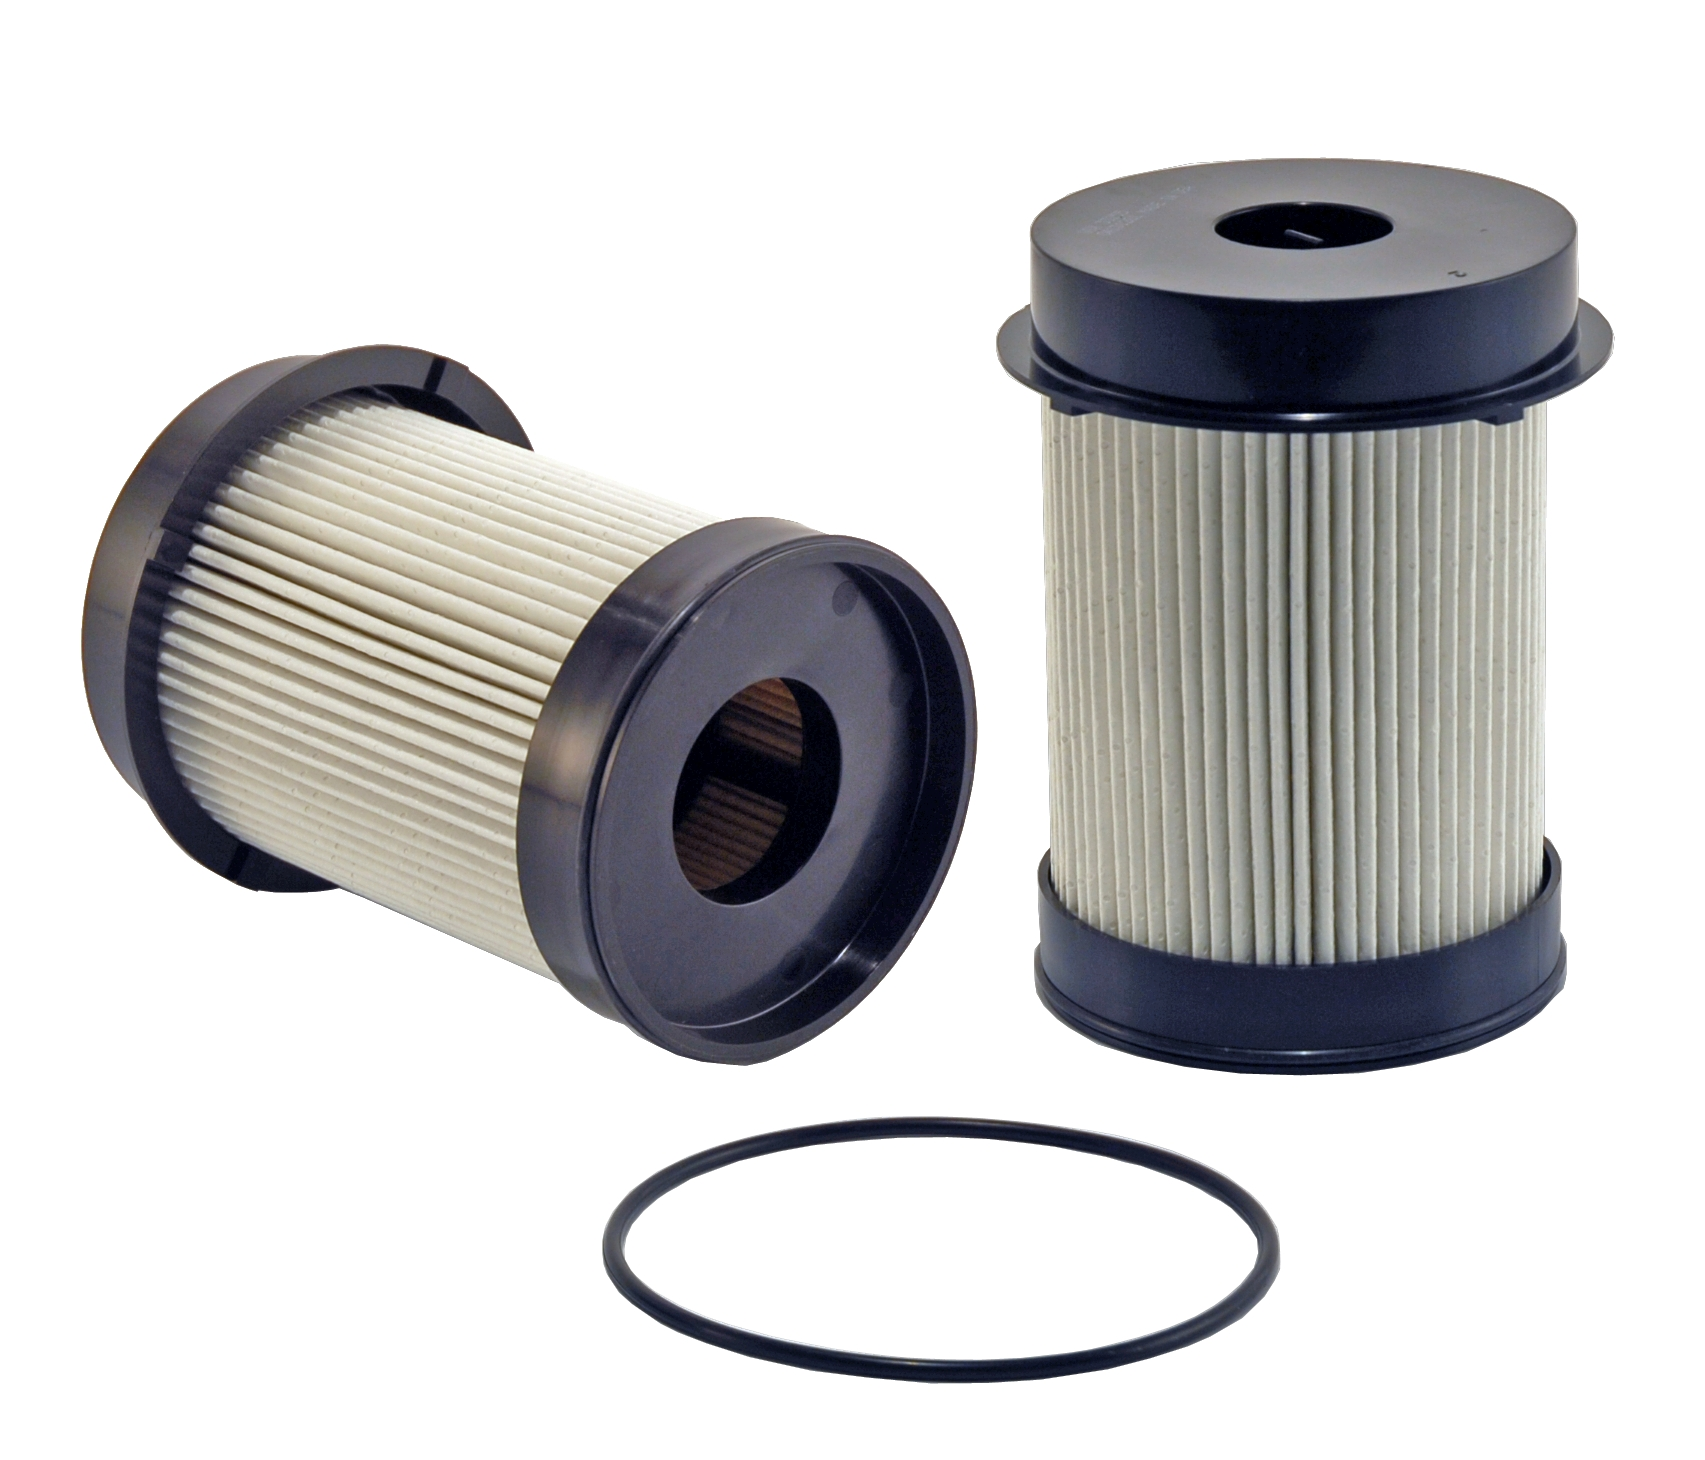 33255 Wix Filters Fuel Filter OE Replacement